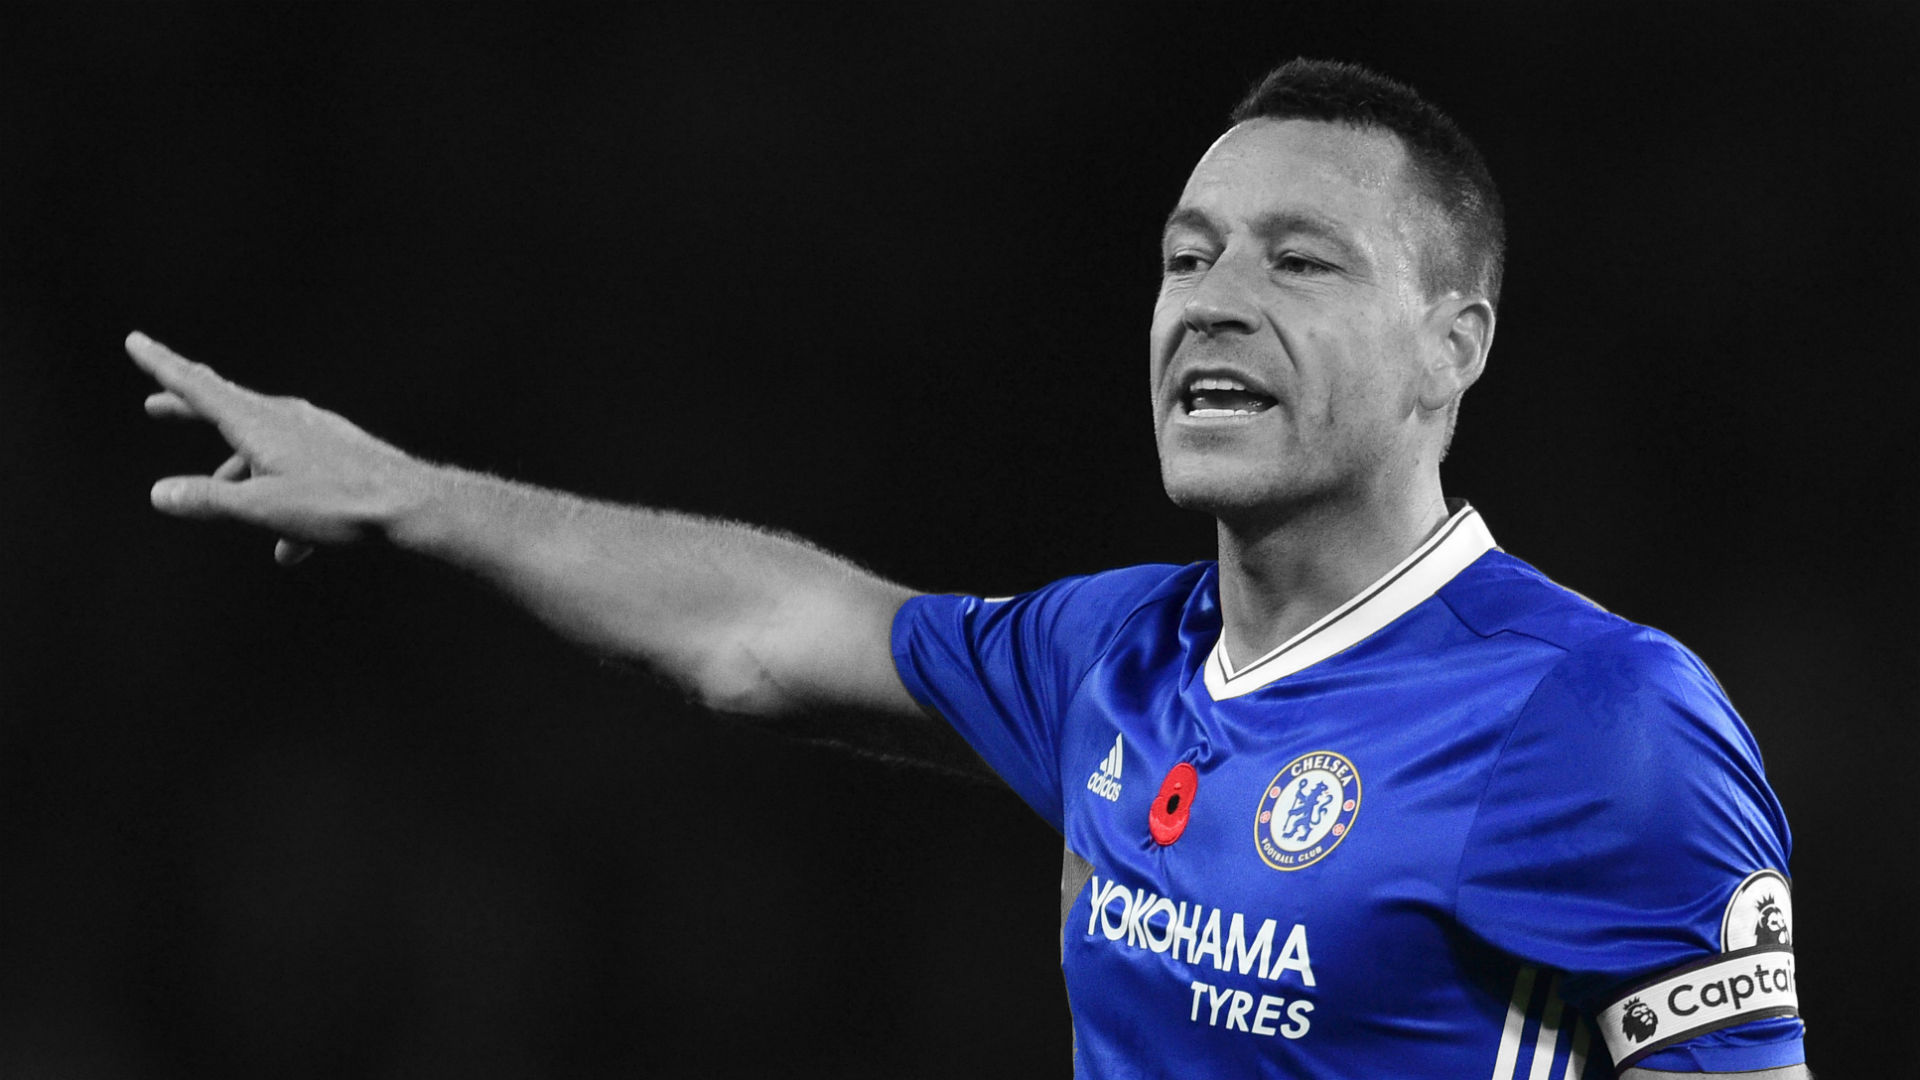 Terry Could Win Arsenal The Premier League, Says Redknapp